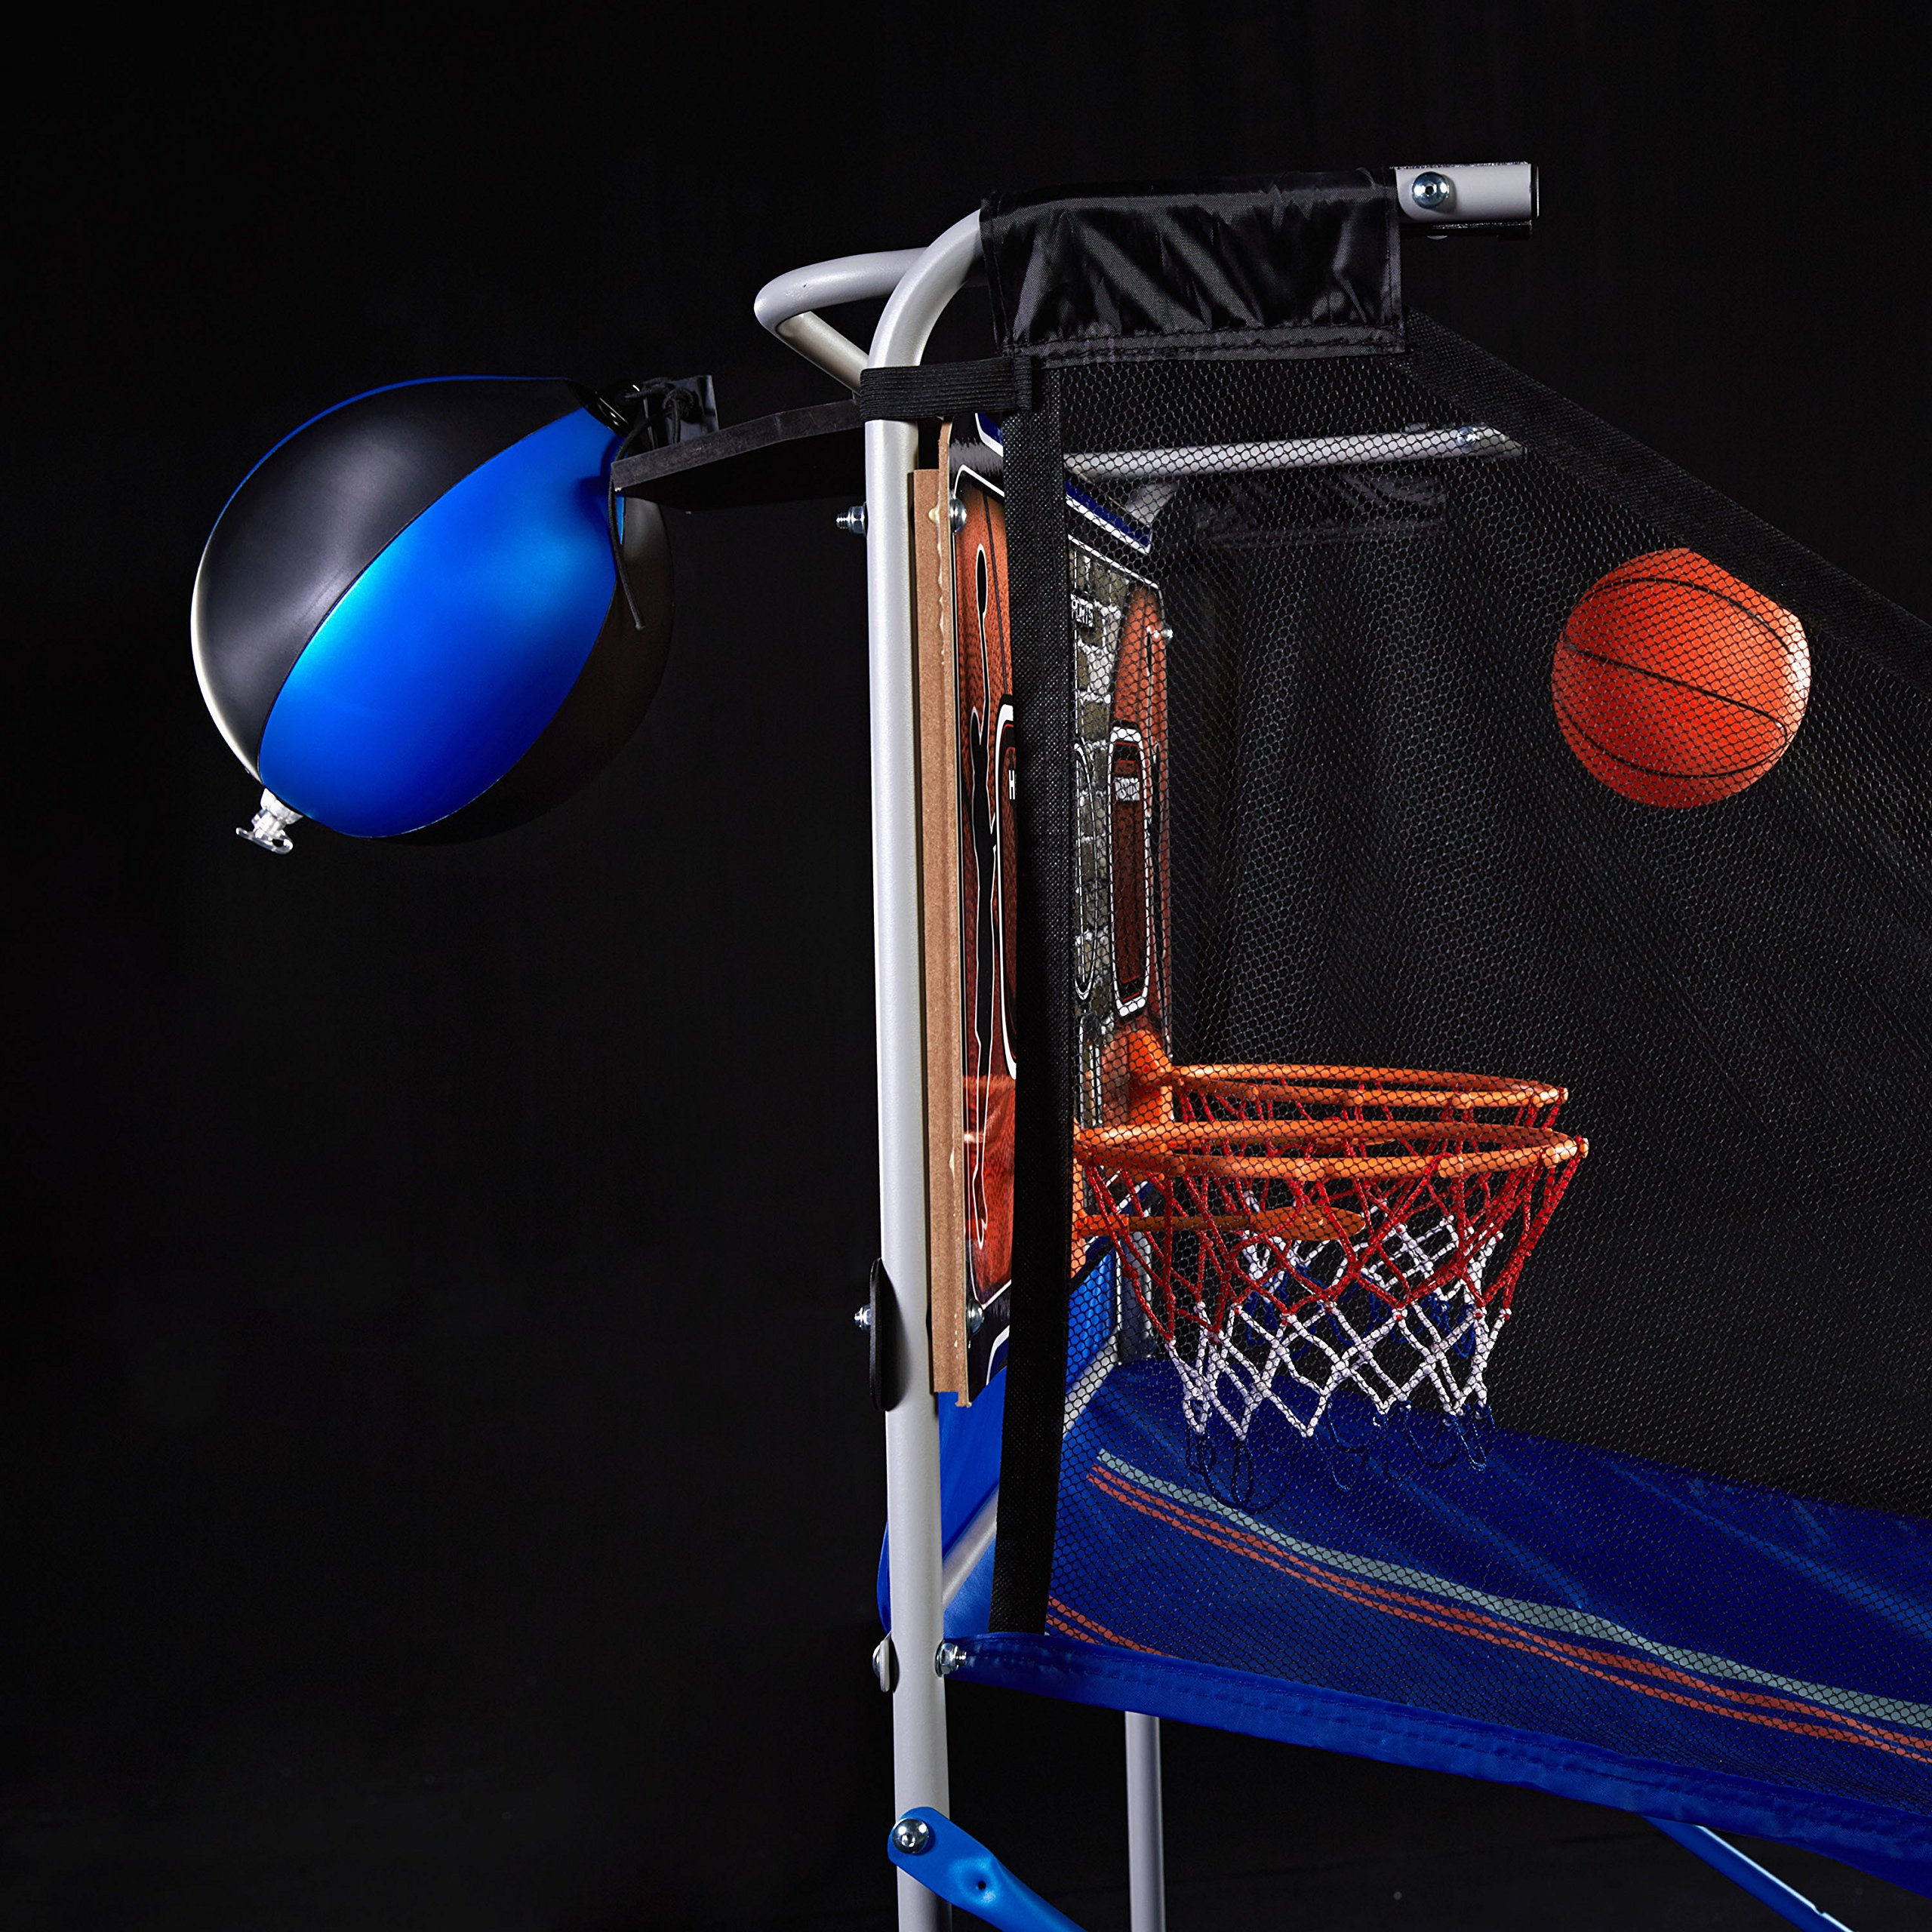 MD Sports BBG019_067M 4 in 1 Junior Basketball Game (Basketball, Soccer, Boxing & KNEE Hockey), Blue by MD Sports (Image #9)